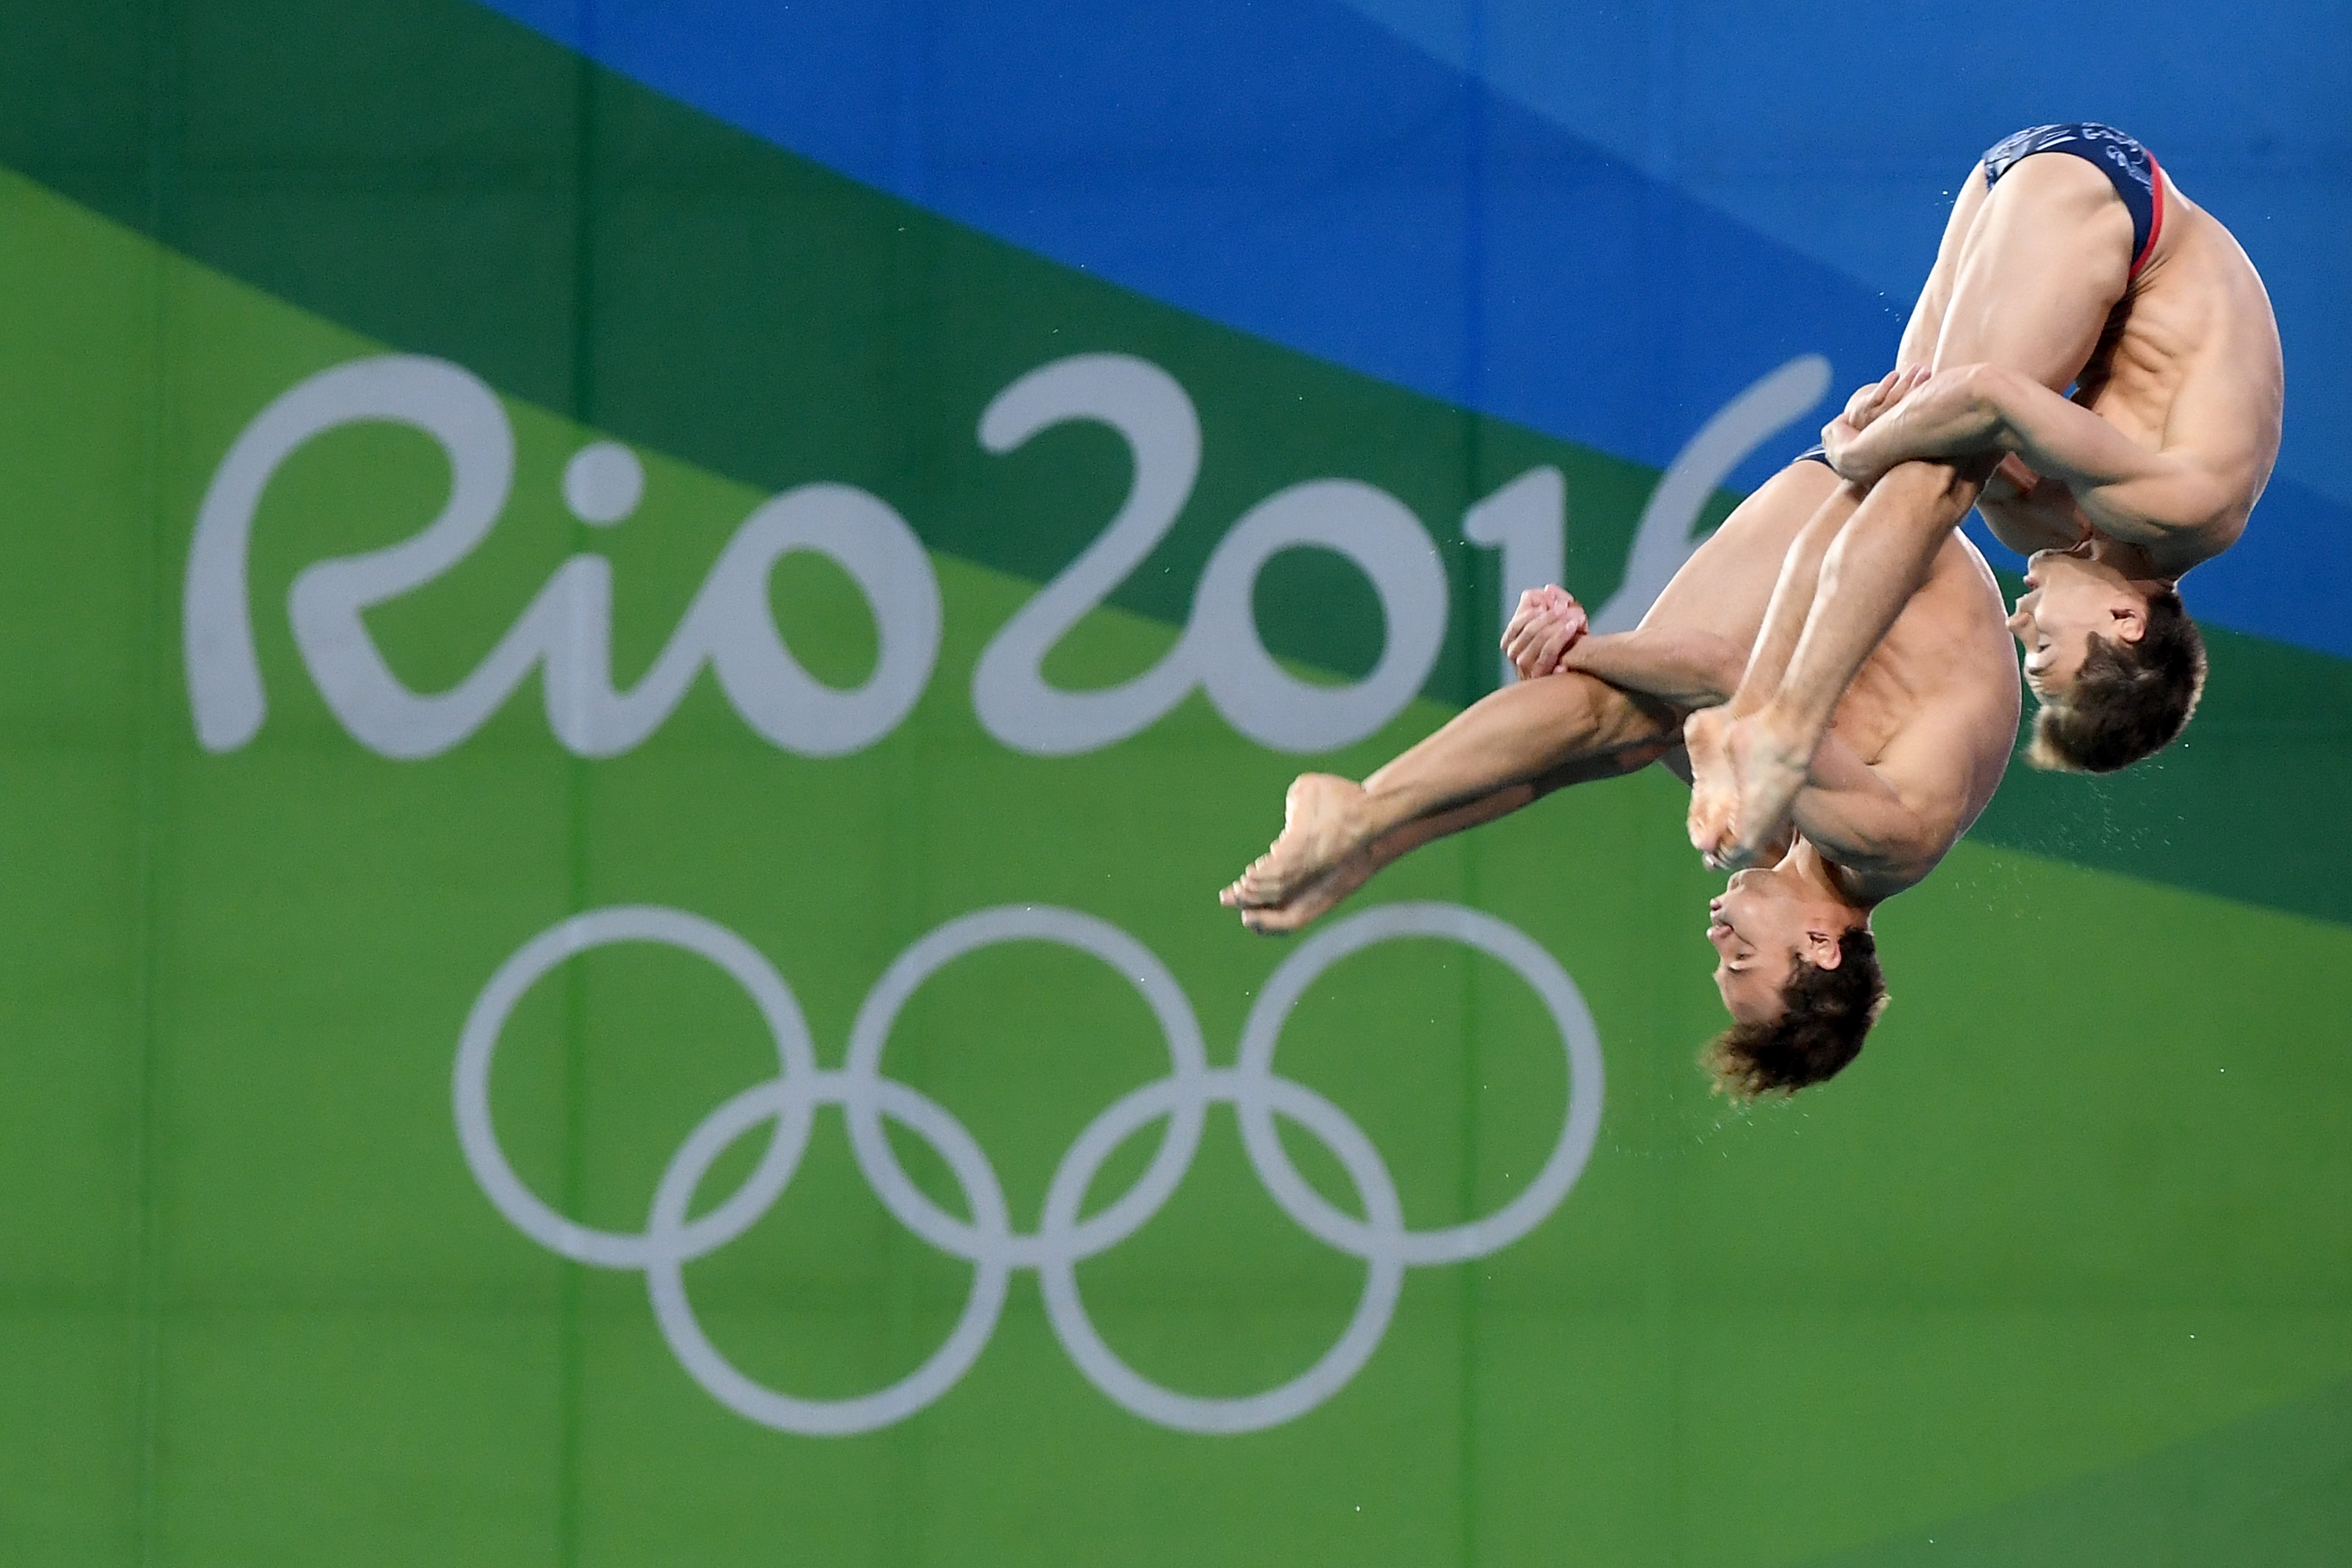 RIO DE JANEIRO, BRAZIL - AUGUST 08: Tom Daley and Daniel Goodfellow of Great Britain compete in the Men's Diving Synchronised 10m Platform Final on Day 3 of the Rio 2016 Olympic Games at Maria Lenk Aquatics Centre on August 8, 2016 in Rio de Janeiro, Brazil. (Photo by Quinn Rooney/Getty Images)